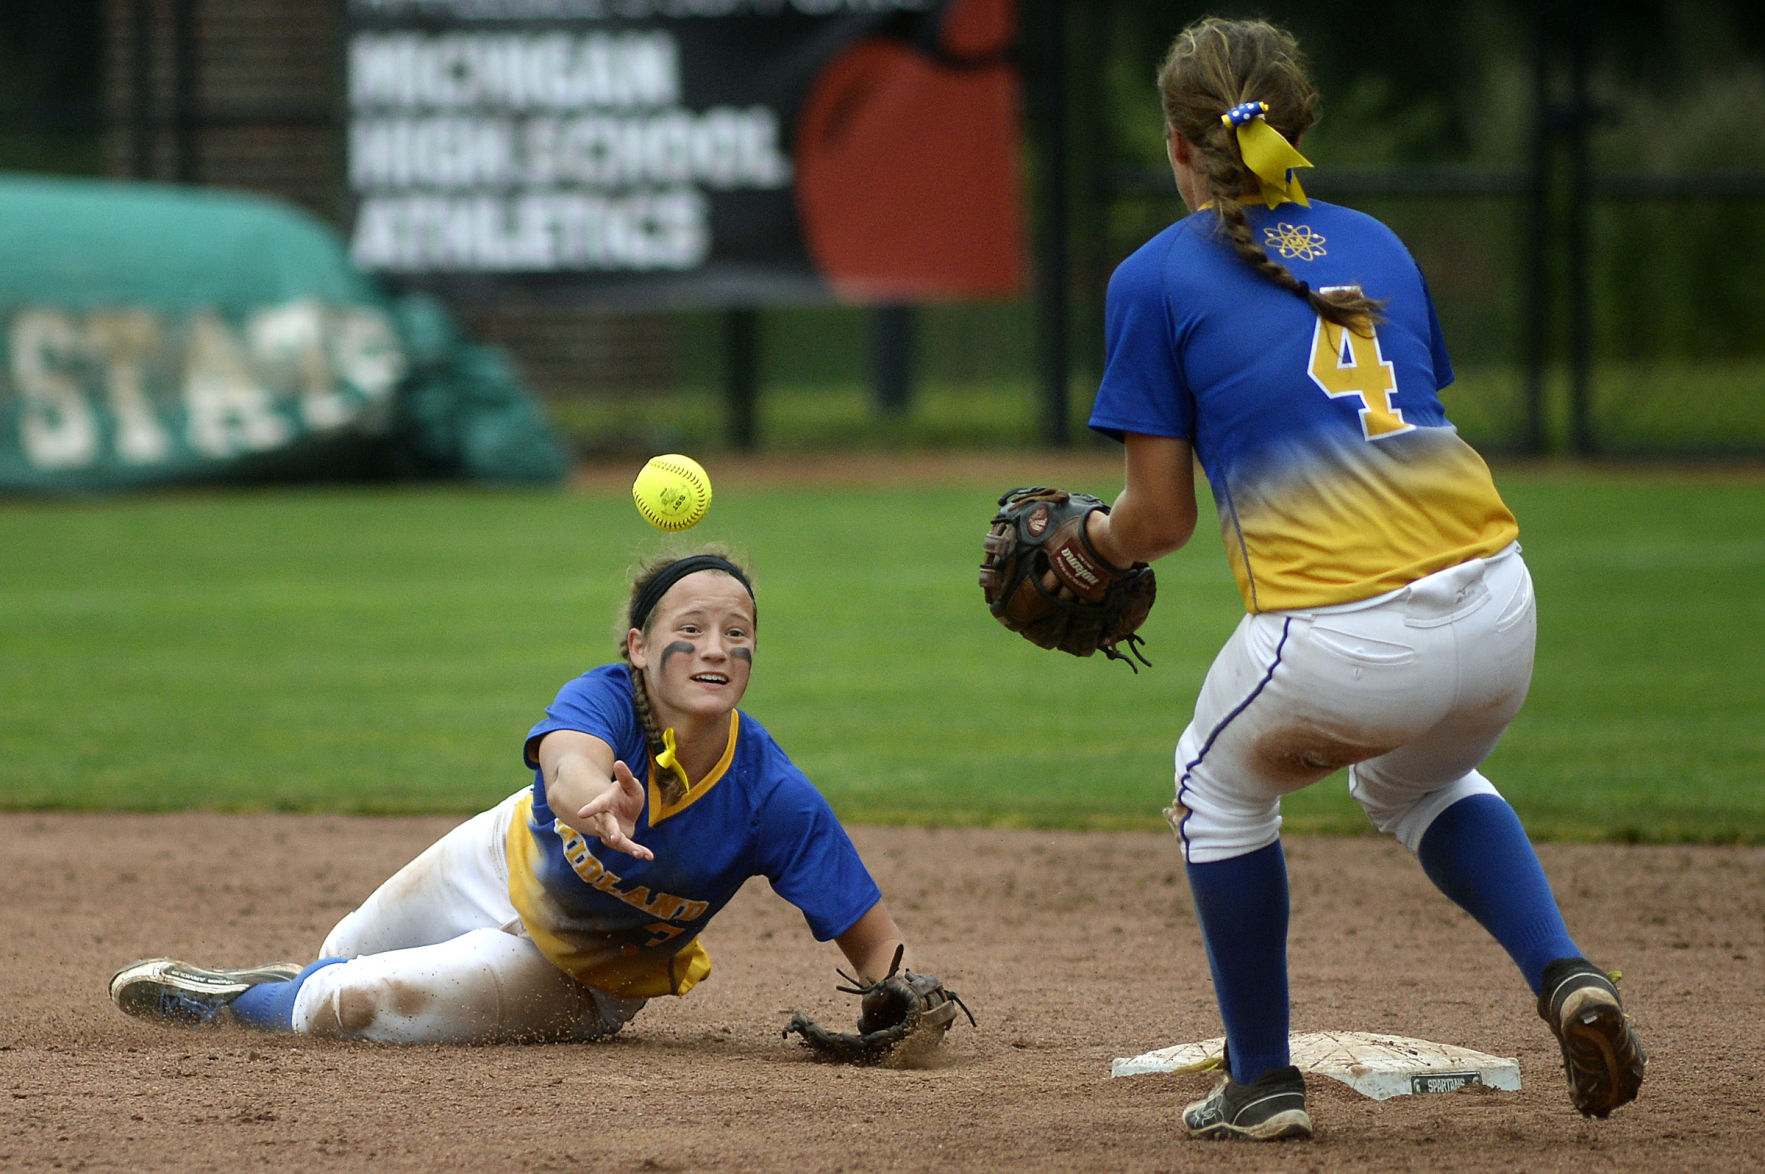 No. 7 Midland High softball team falls to No. 1 Macomb Dakota in semifinals (includes video interview) - Midland Daily News